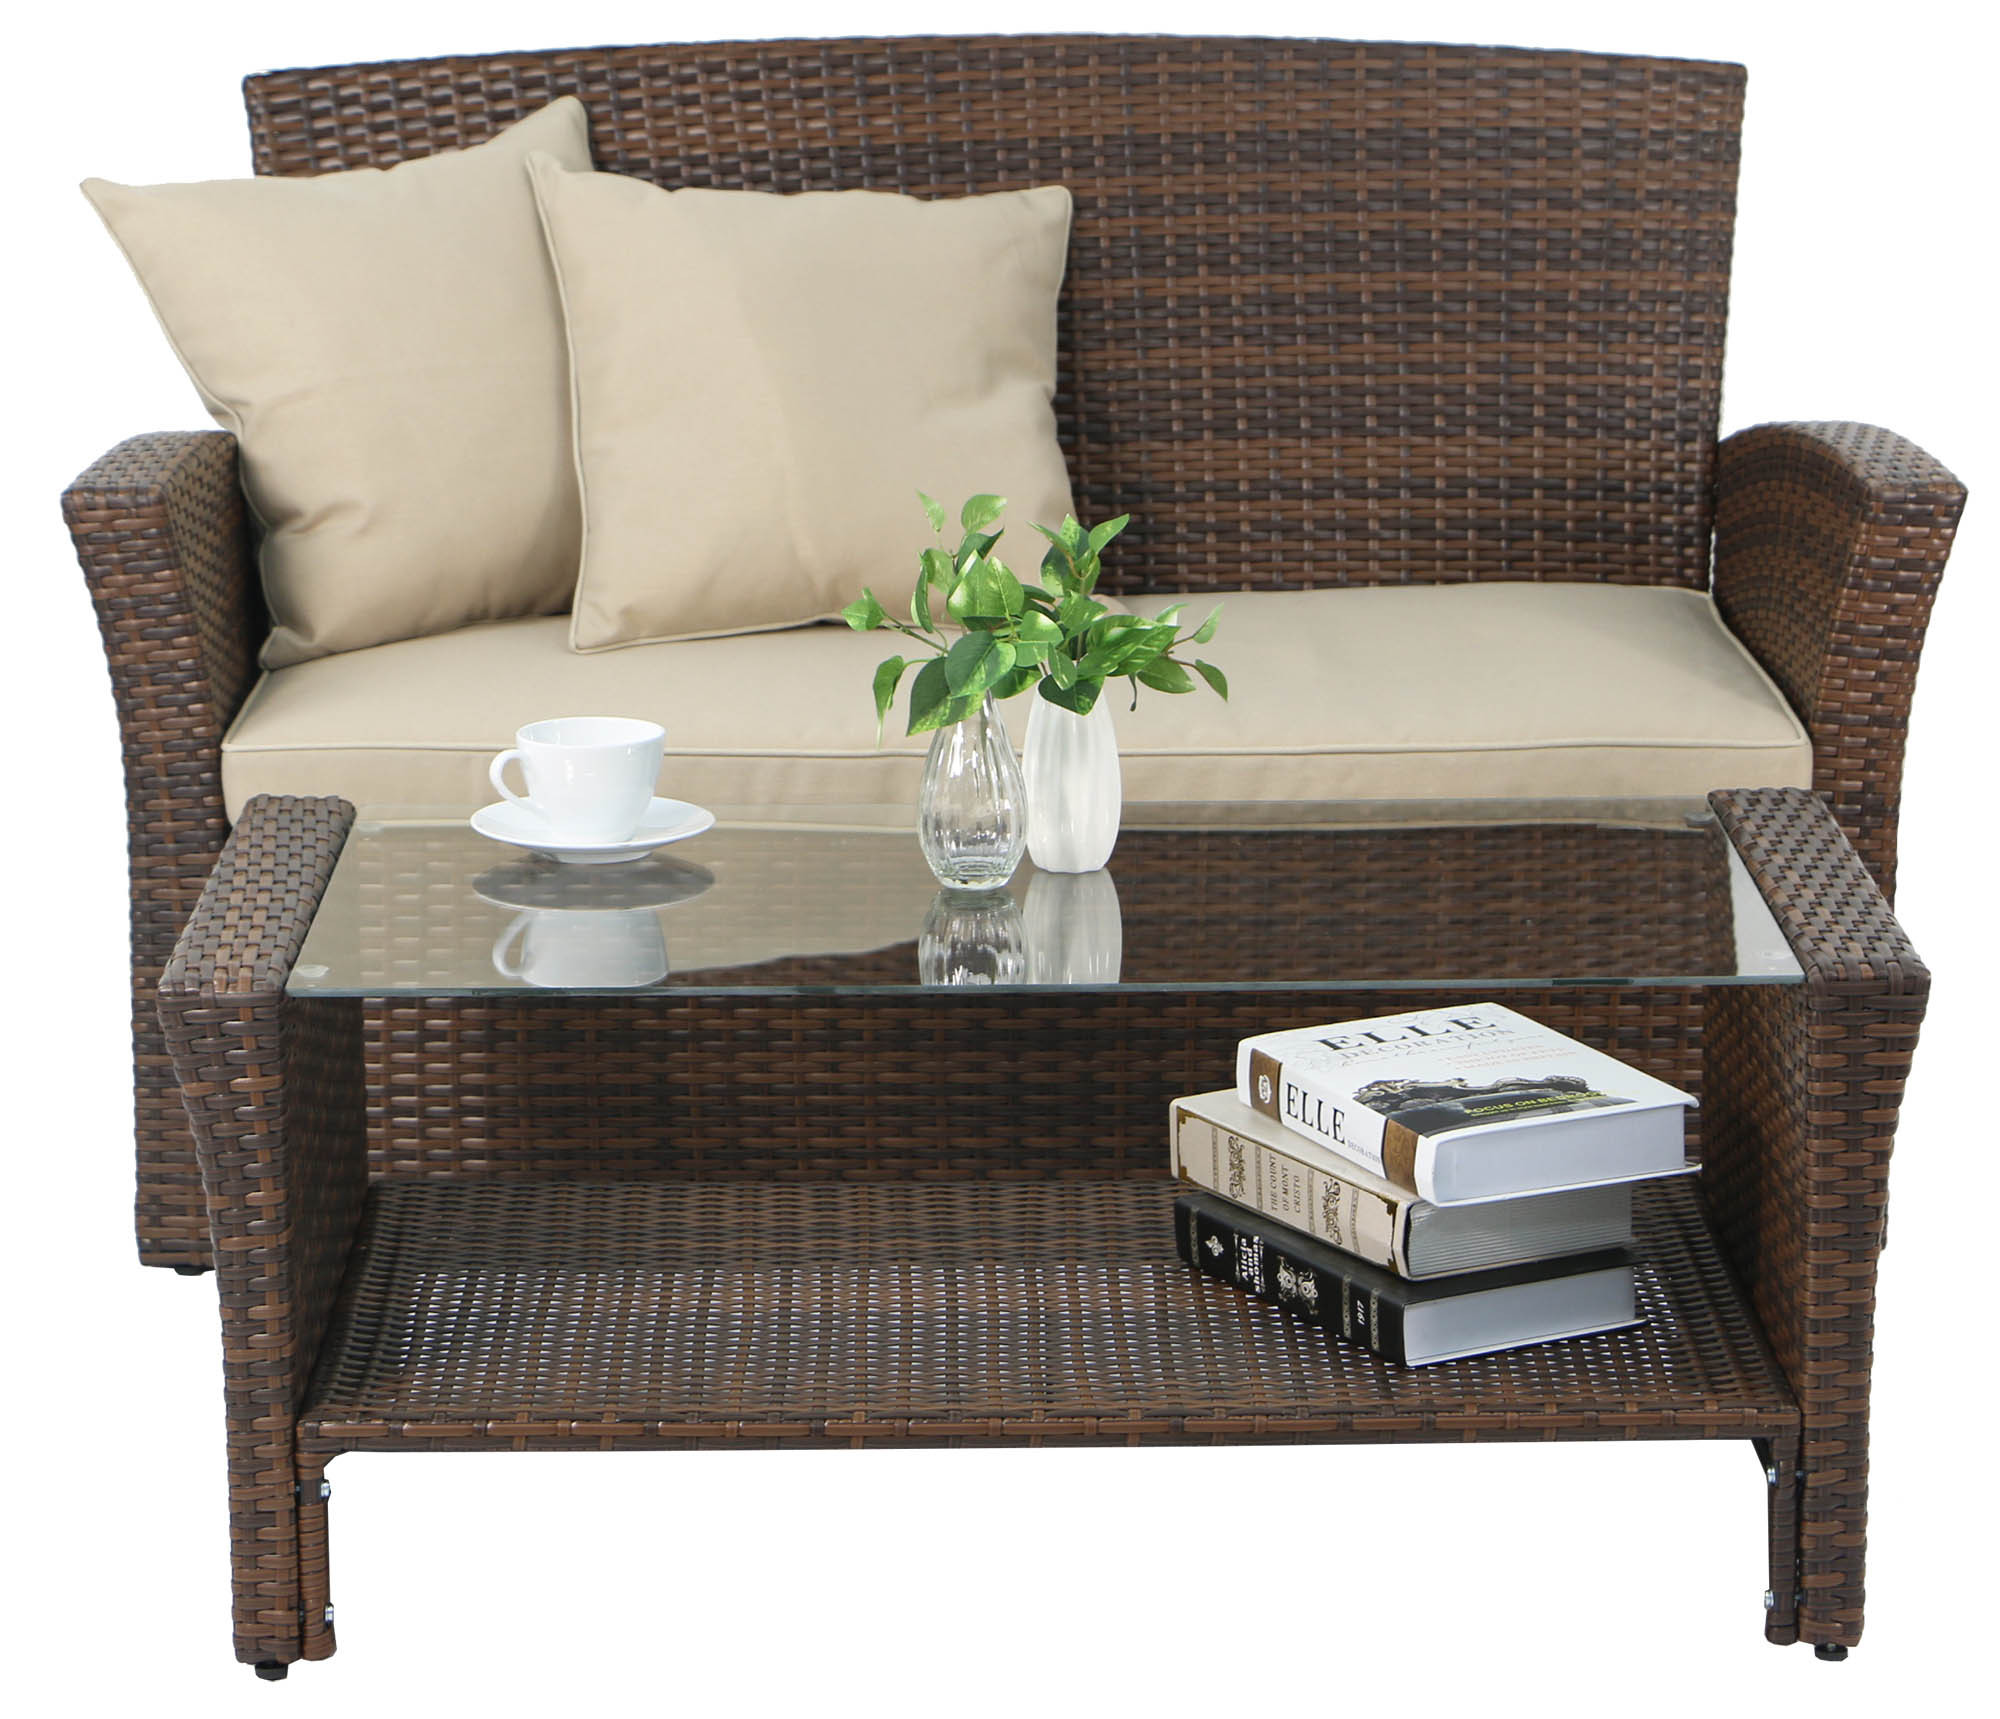 Beaumont Synthetic Rattan Outdoor Sofa Set Brown Display Gallery Item 1